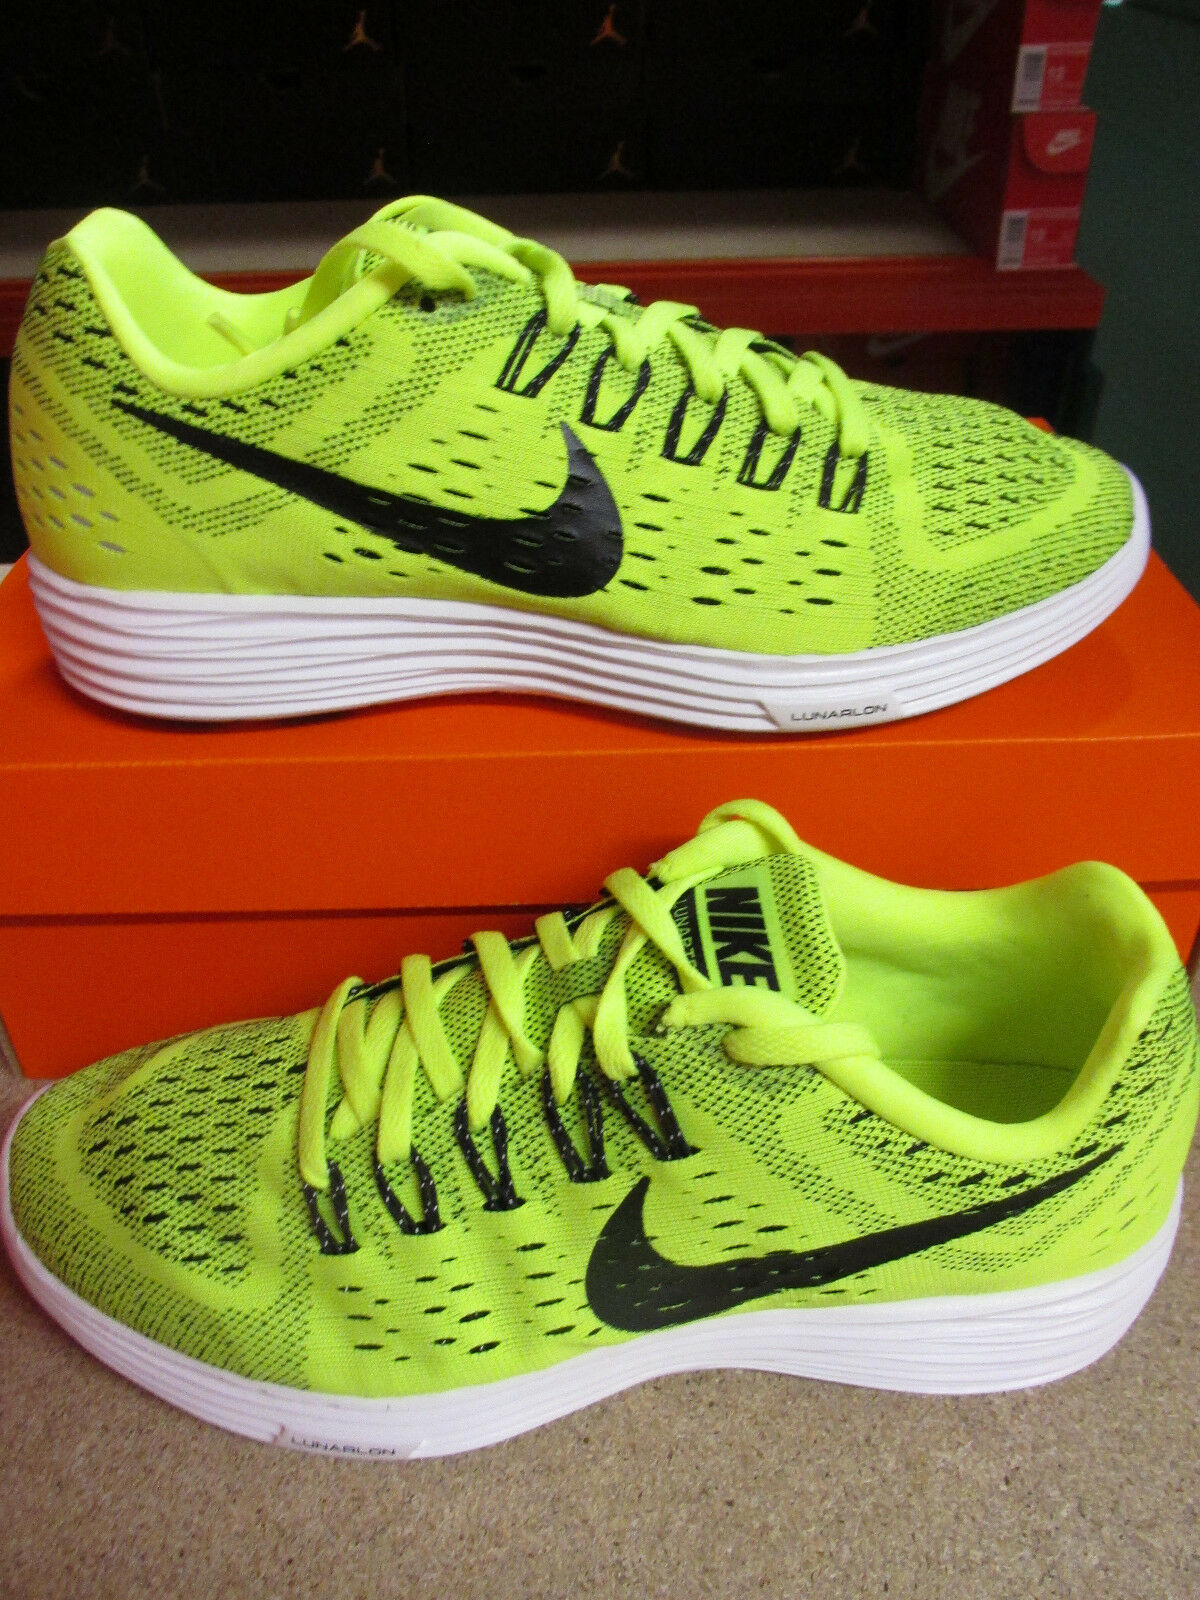 nike lunartempo homme running trainers 705461 700 sneakers chaussures